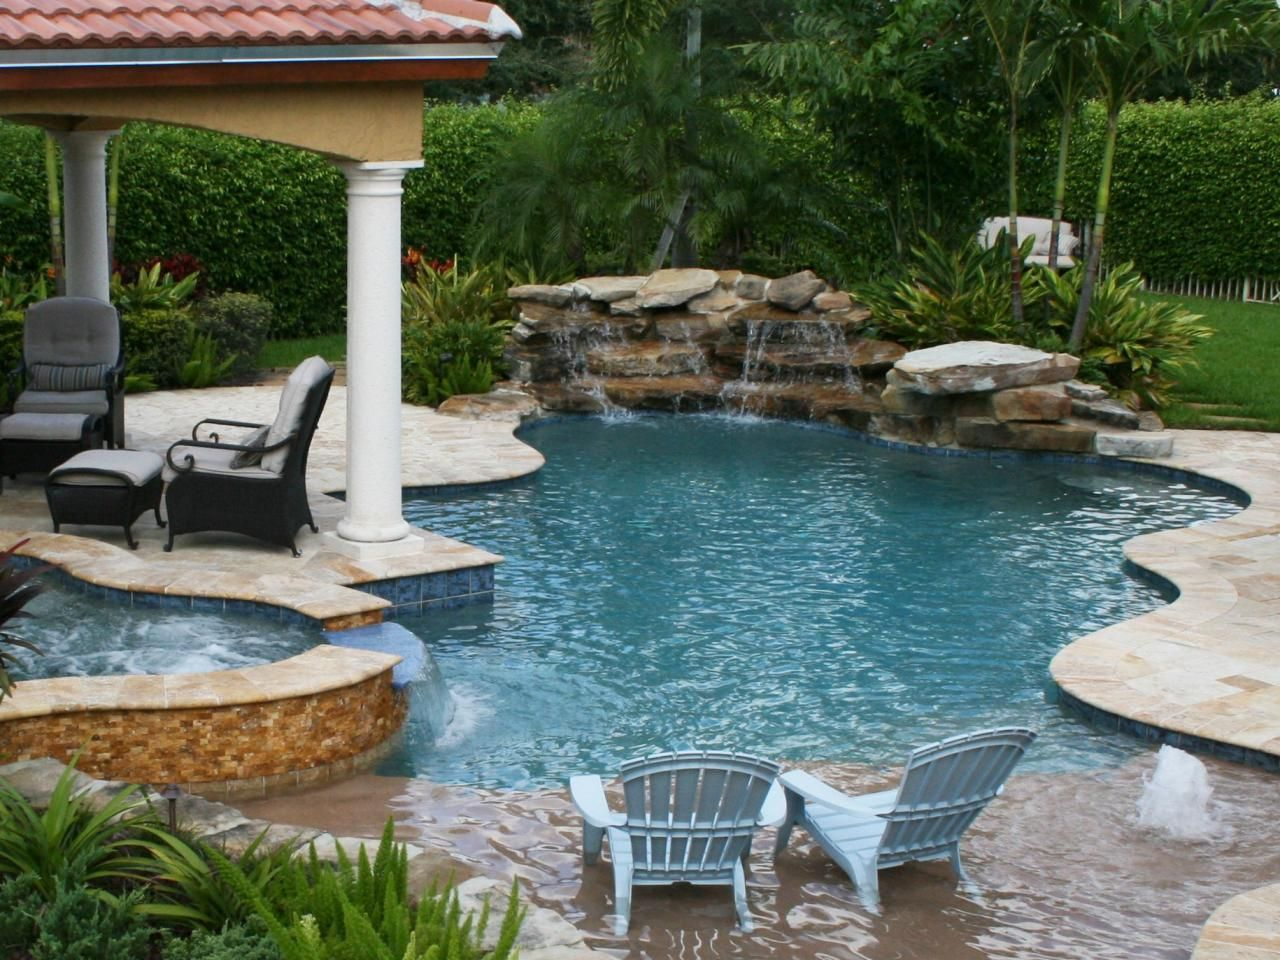 Dreamy pool design ideas pool waterfall ideas for Water pool design